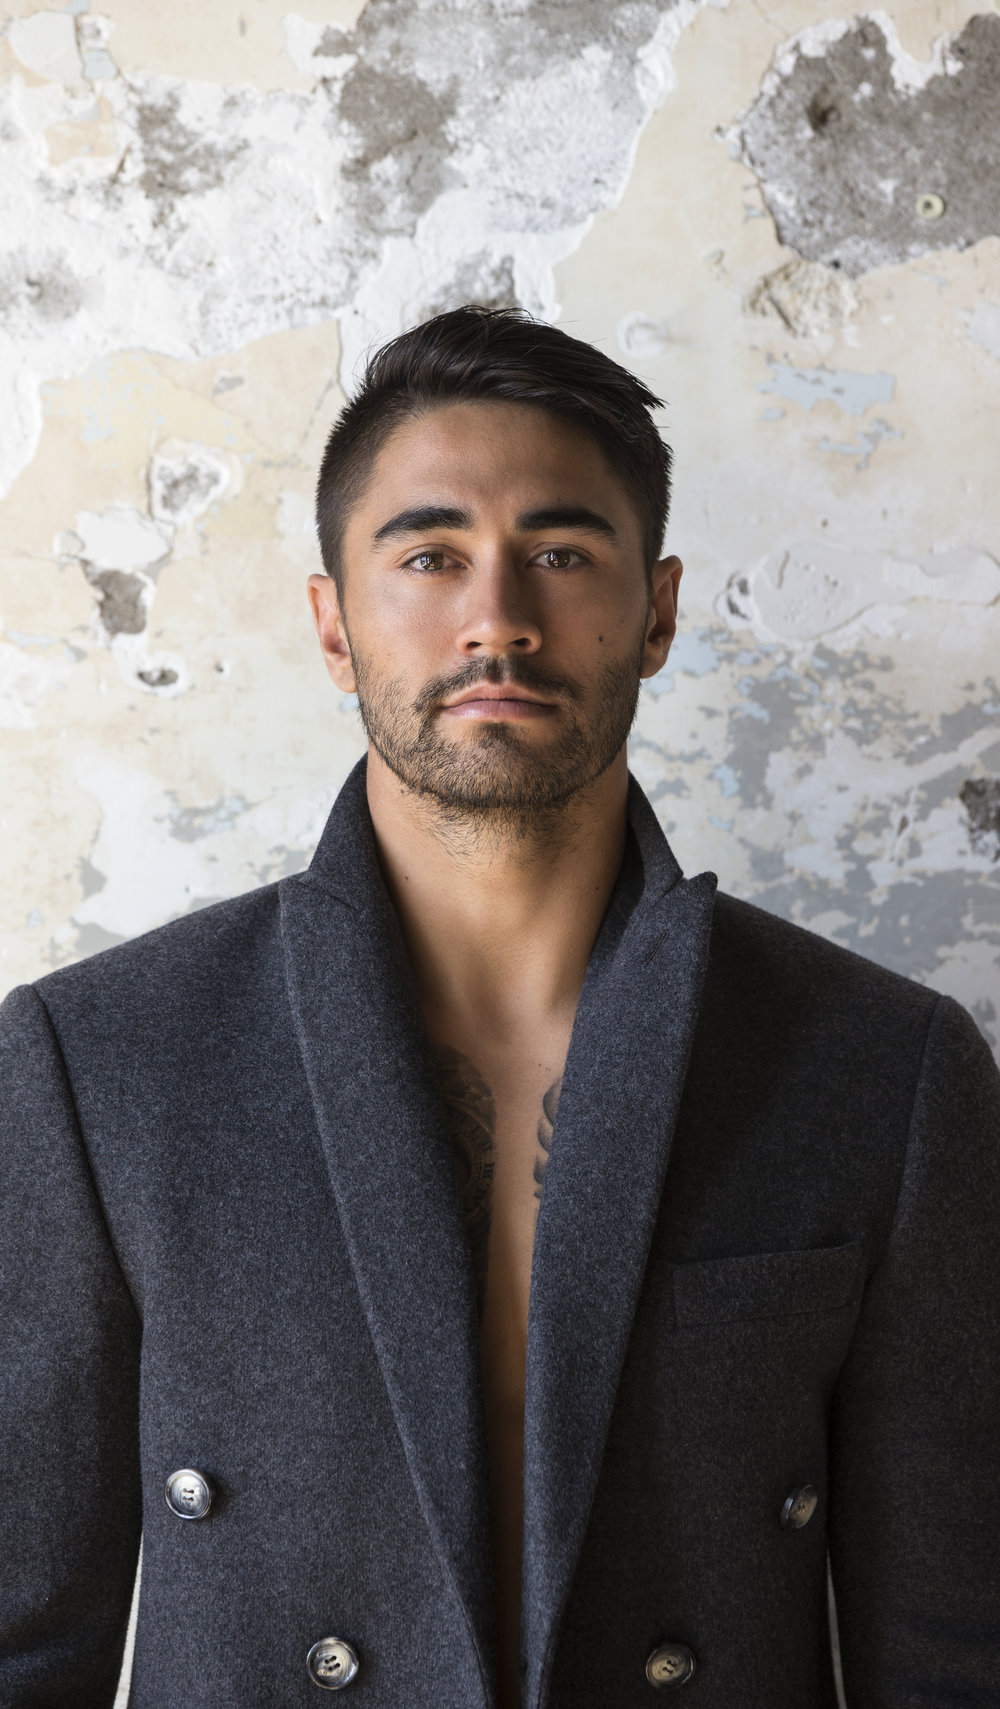 Warrior league player Shaun Johnson. VIVA MAGAZINE, Photographer: Guy Coombes.